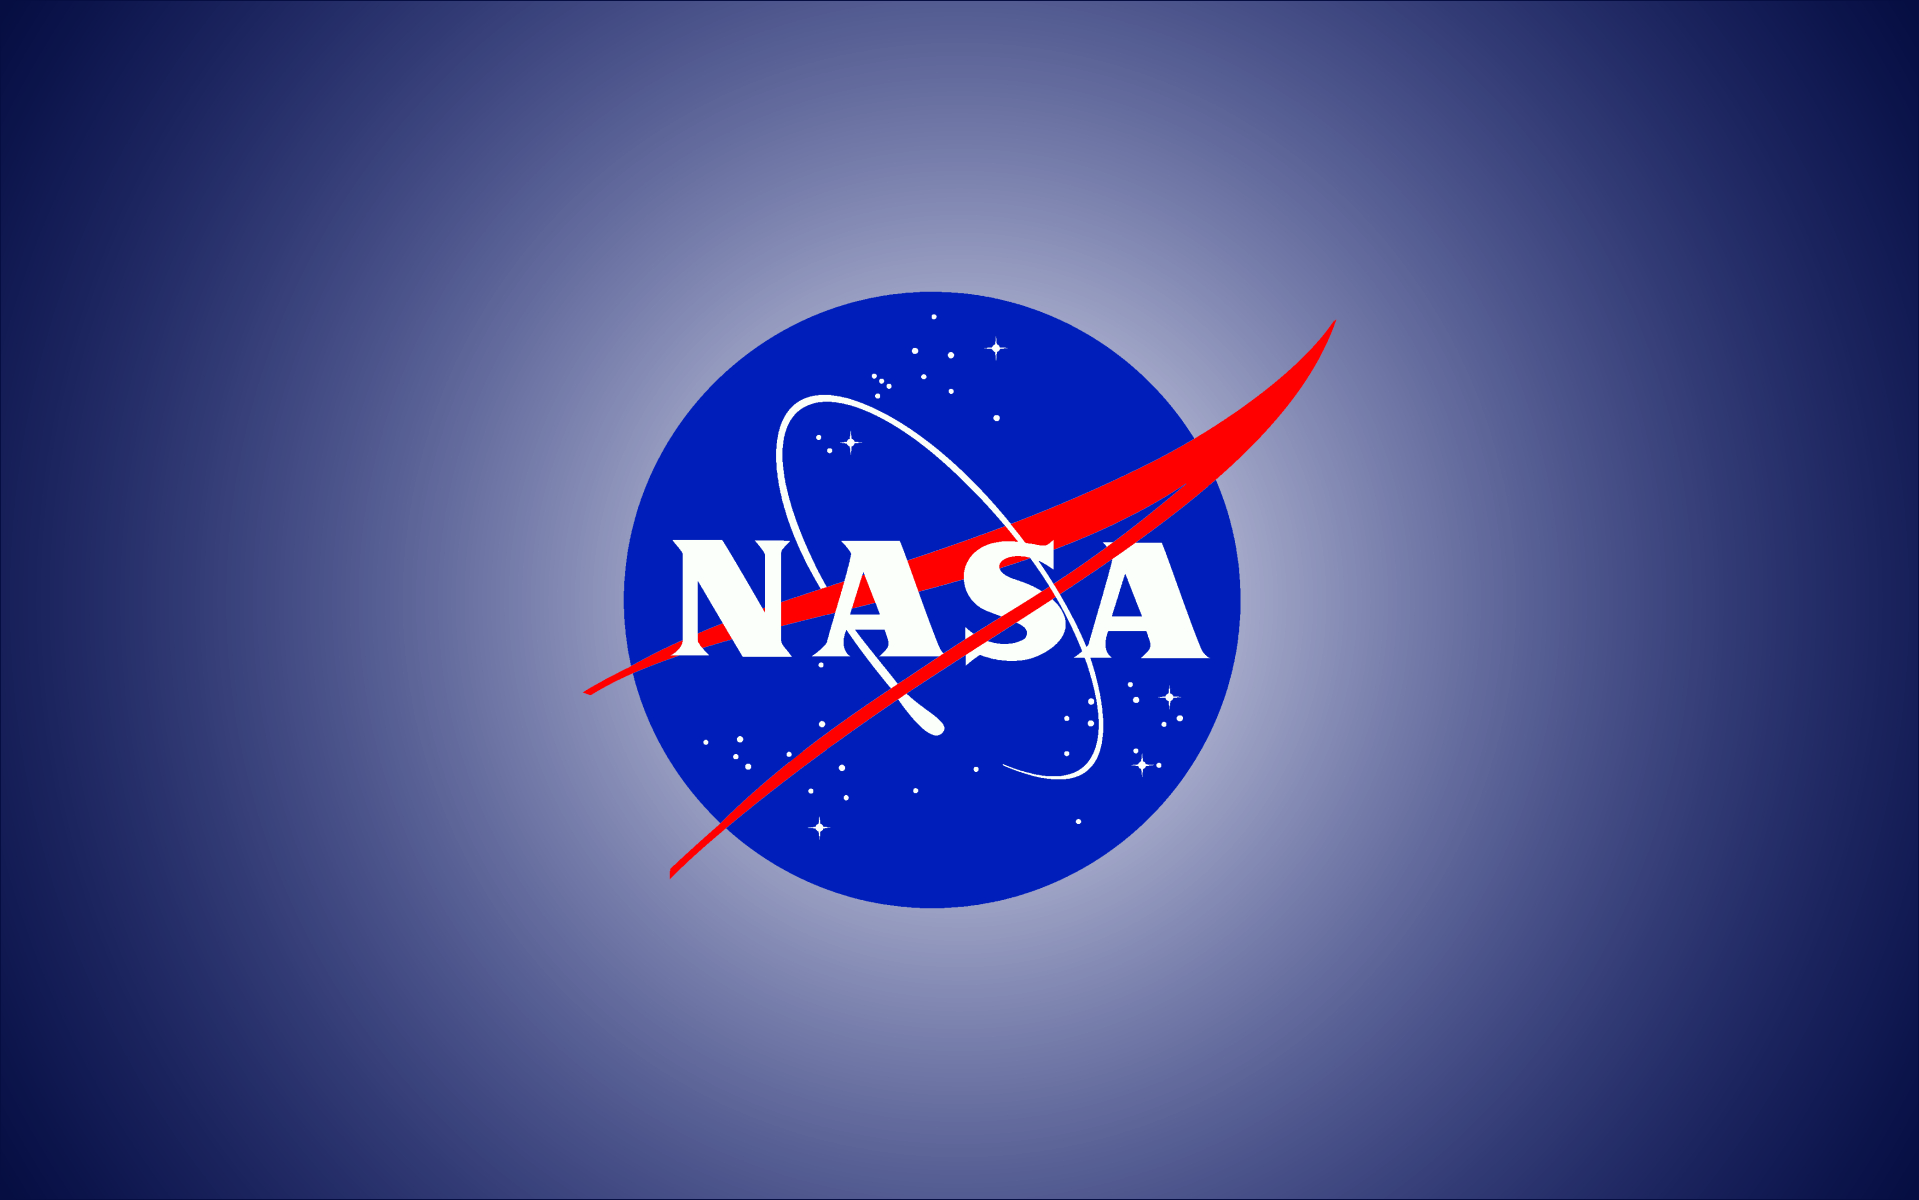 nasa emblem and cadets logos - photo #25